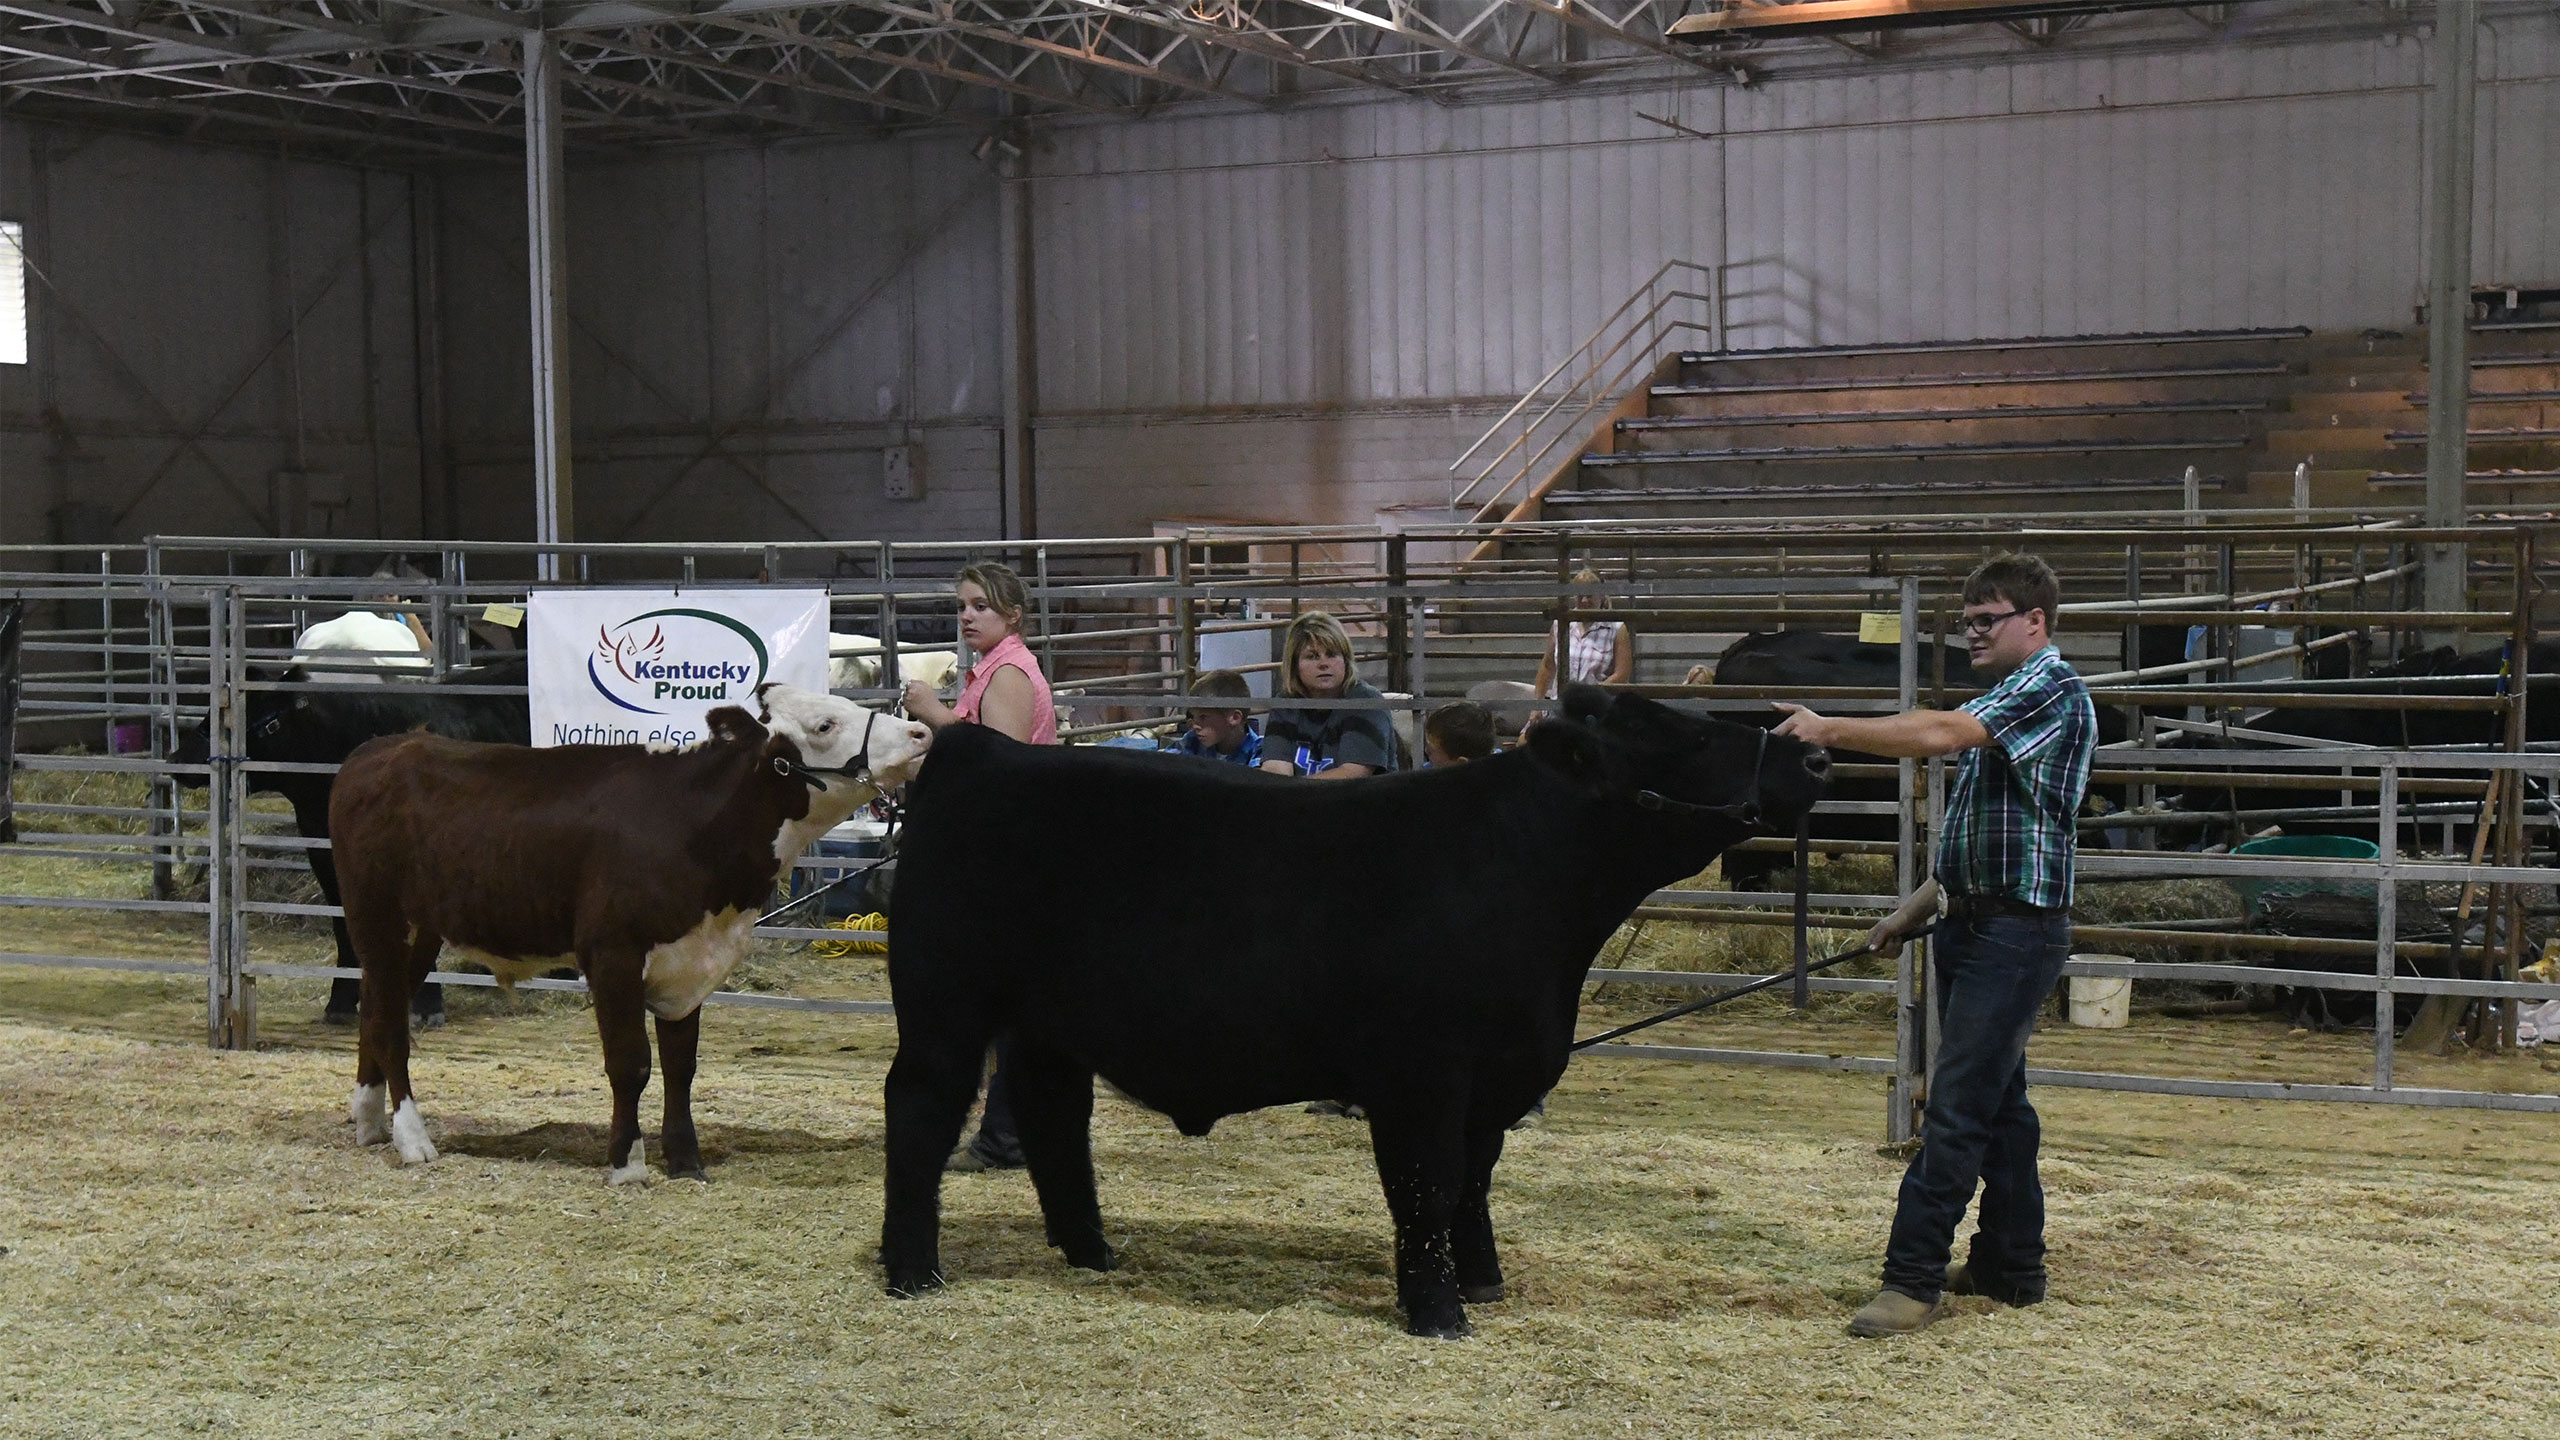 Agriculture students showing cattle at a livestock show.